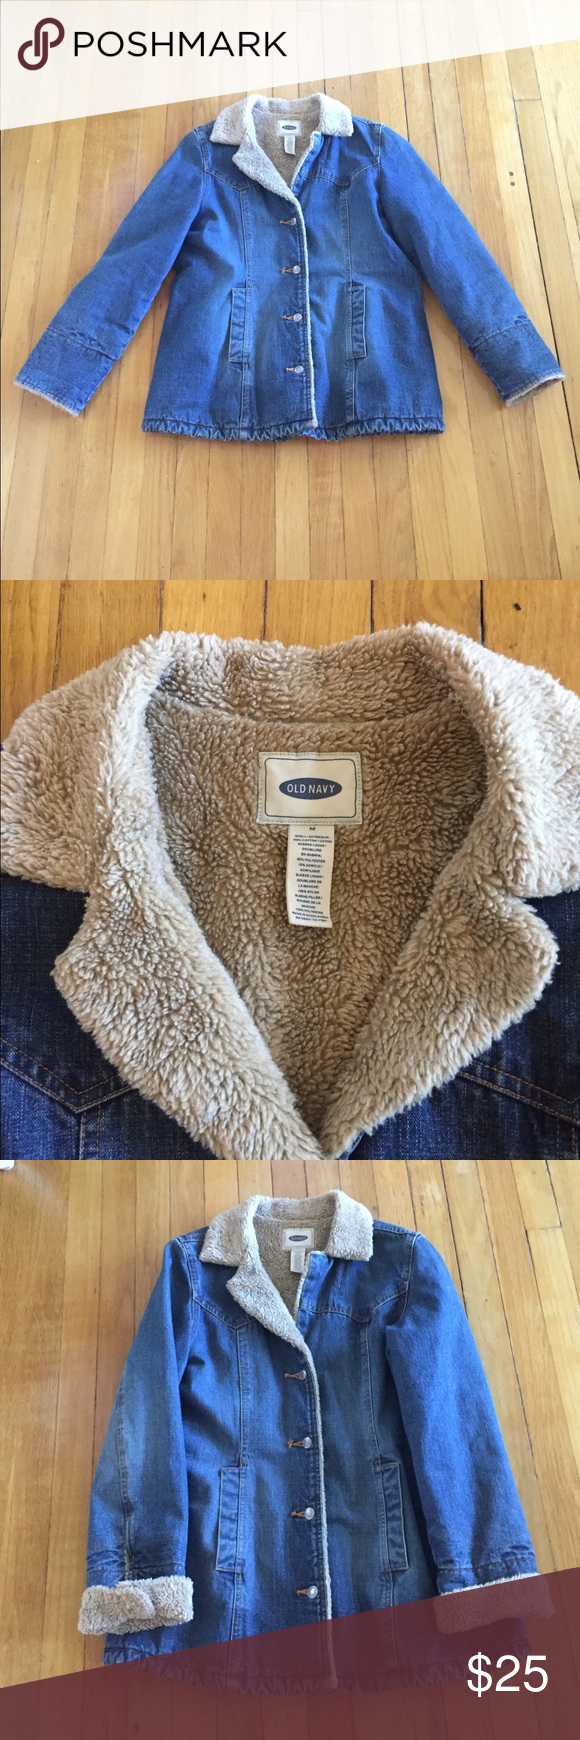 Denim coat This fur lined denim coat is a must for a casual night out during those cold winter nights. Great condition! Old Navy Jackets & Coats Jean Jackets